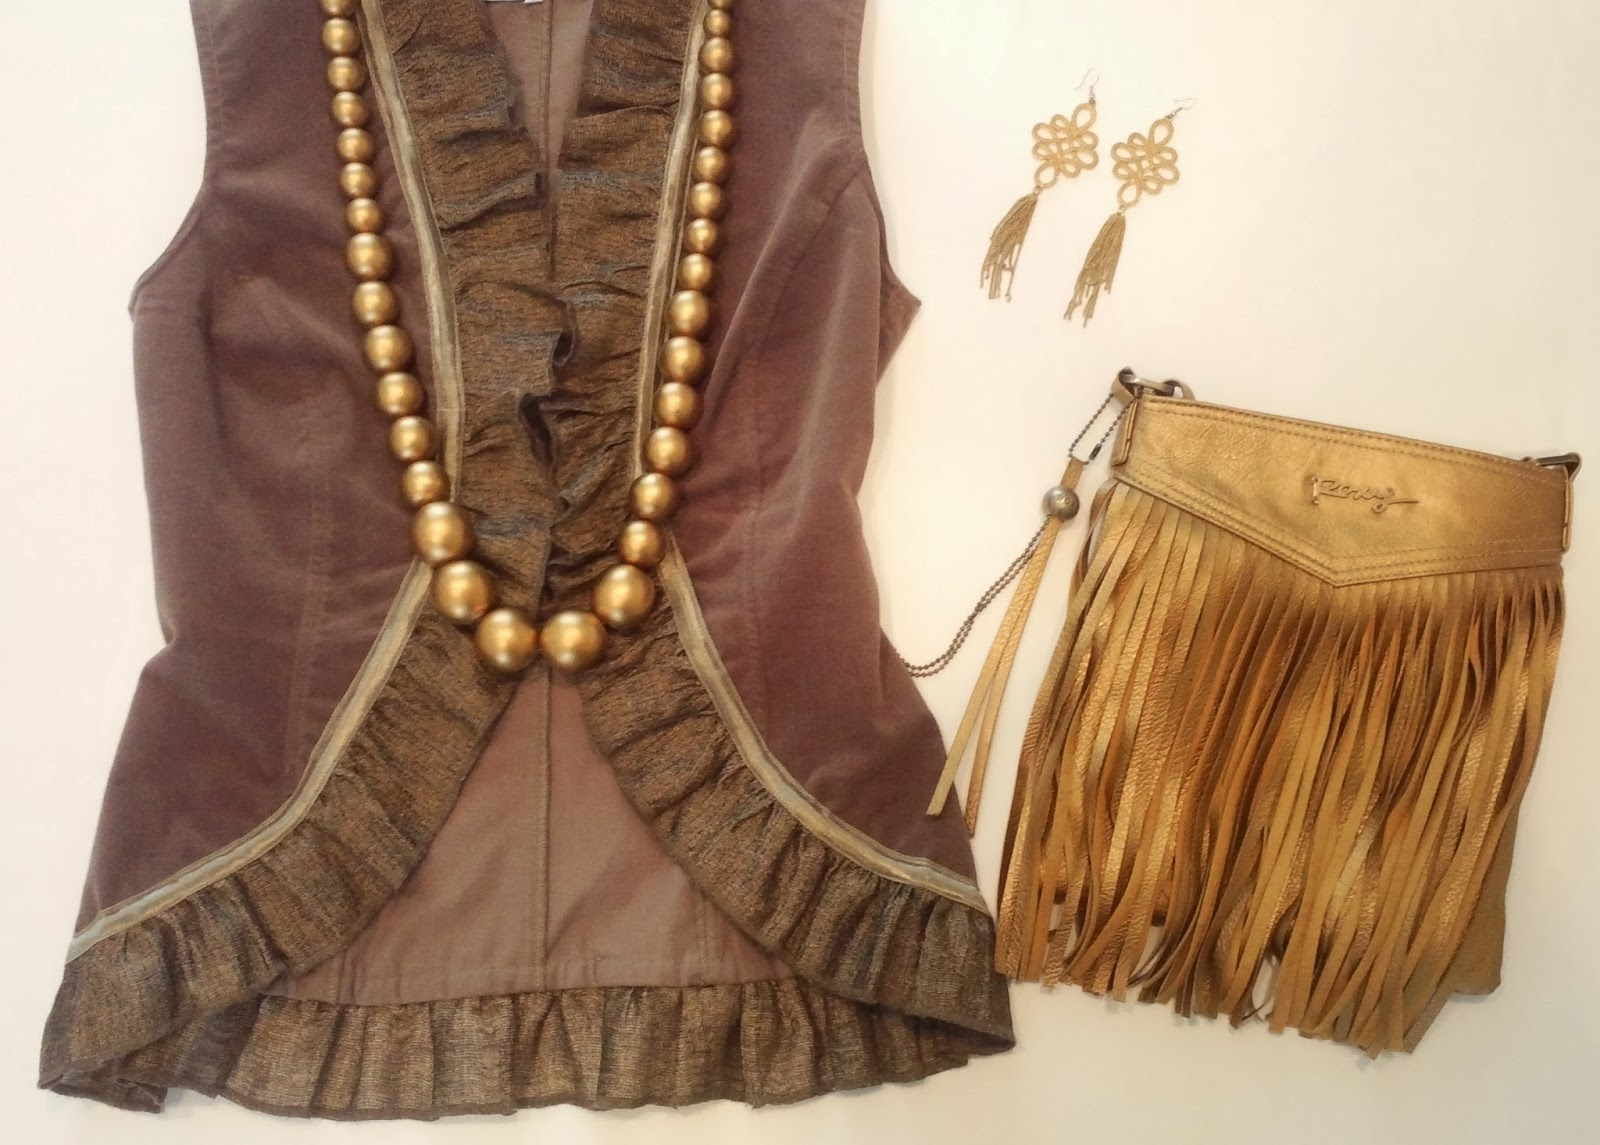 blog.oanasinga.com-outfit-ideas-personal-style-photos-faux-fur-jacket-over-shoulders-gold-accessories-fringes-2